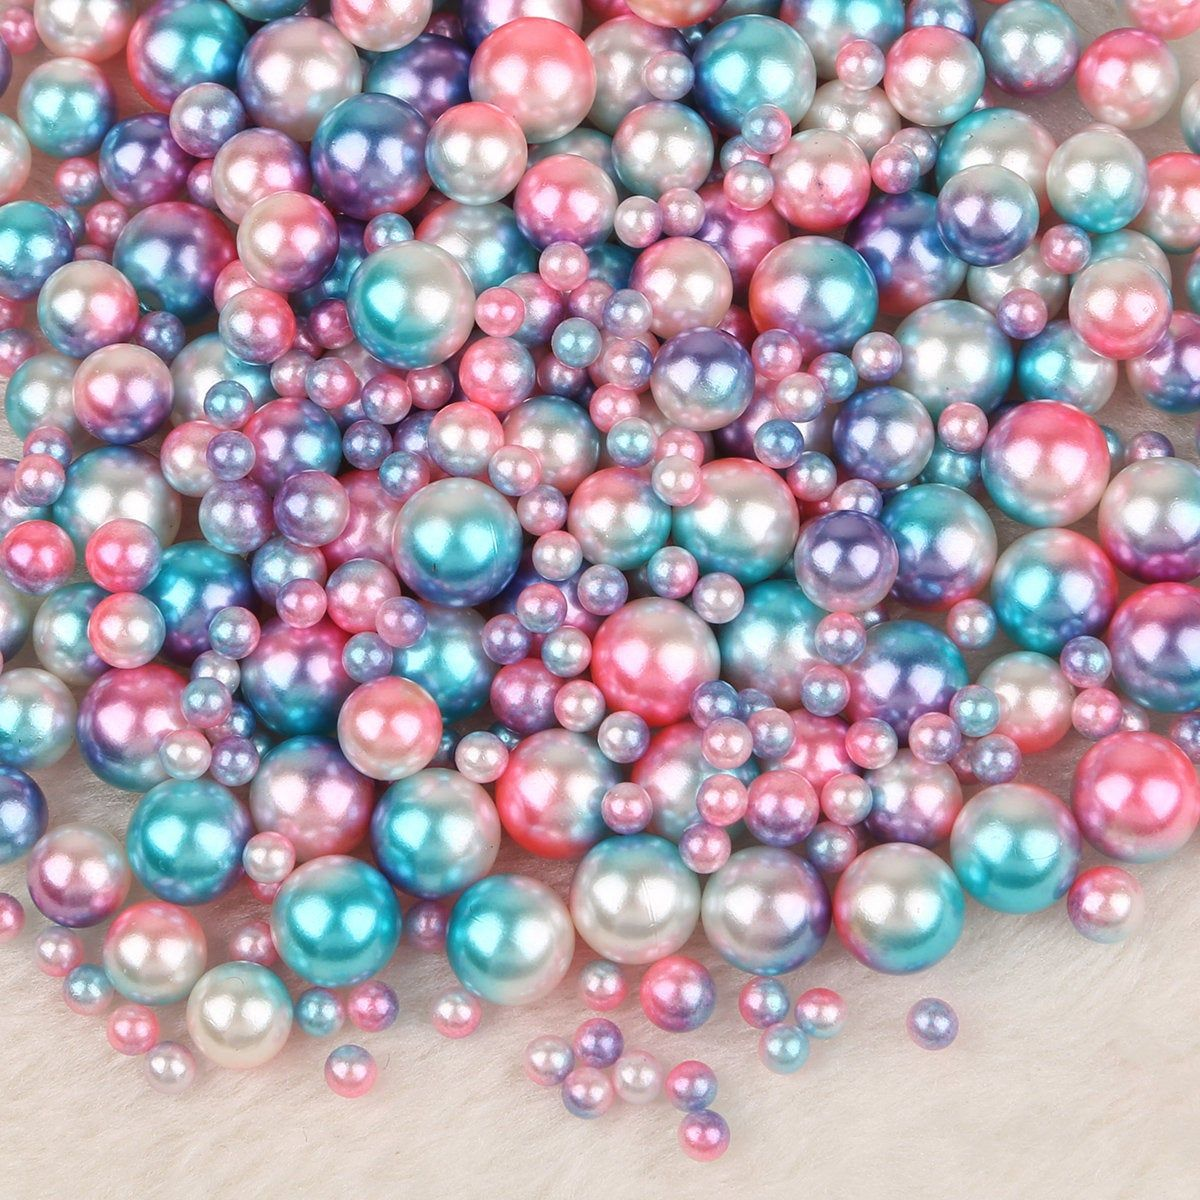 34+ Faux pearl beads for crafts ideas